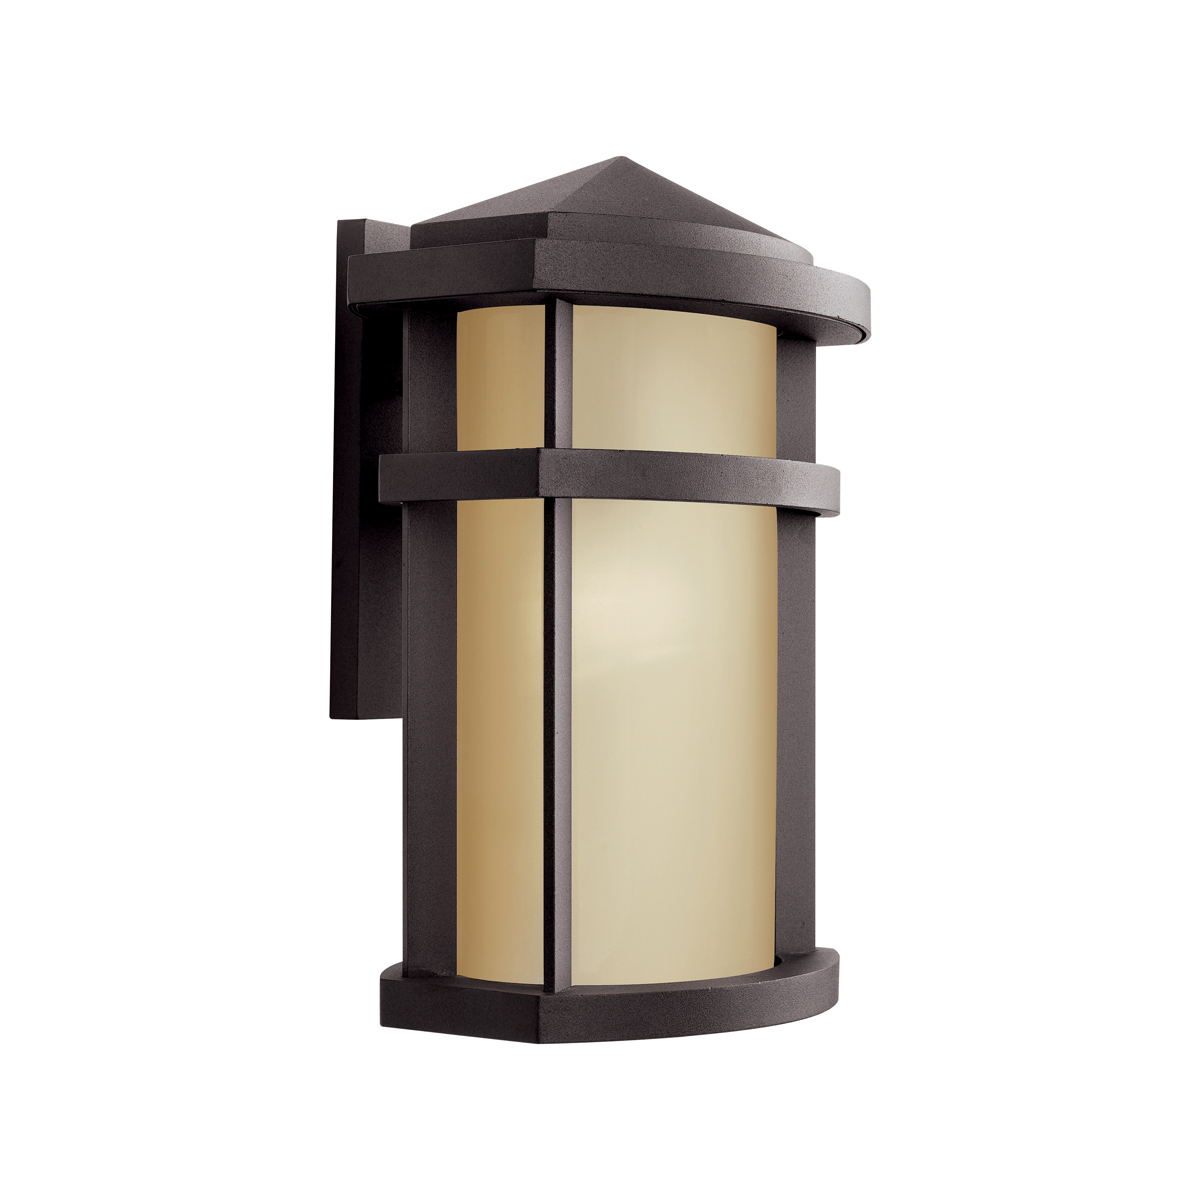 Exterior Wall Lights Architectural : Kichler Lighting (11069AZ) Lantana 1-Light Fluorescent X-Large Outdoor Wall Sconce in ...